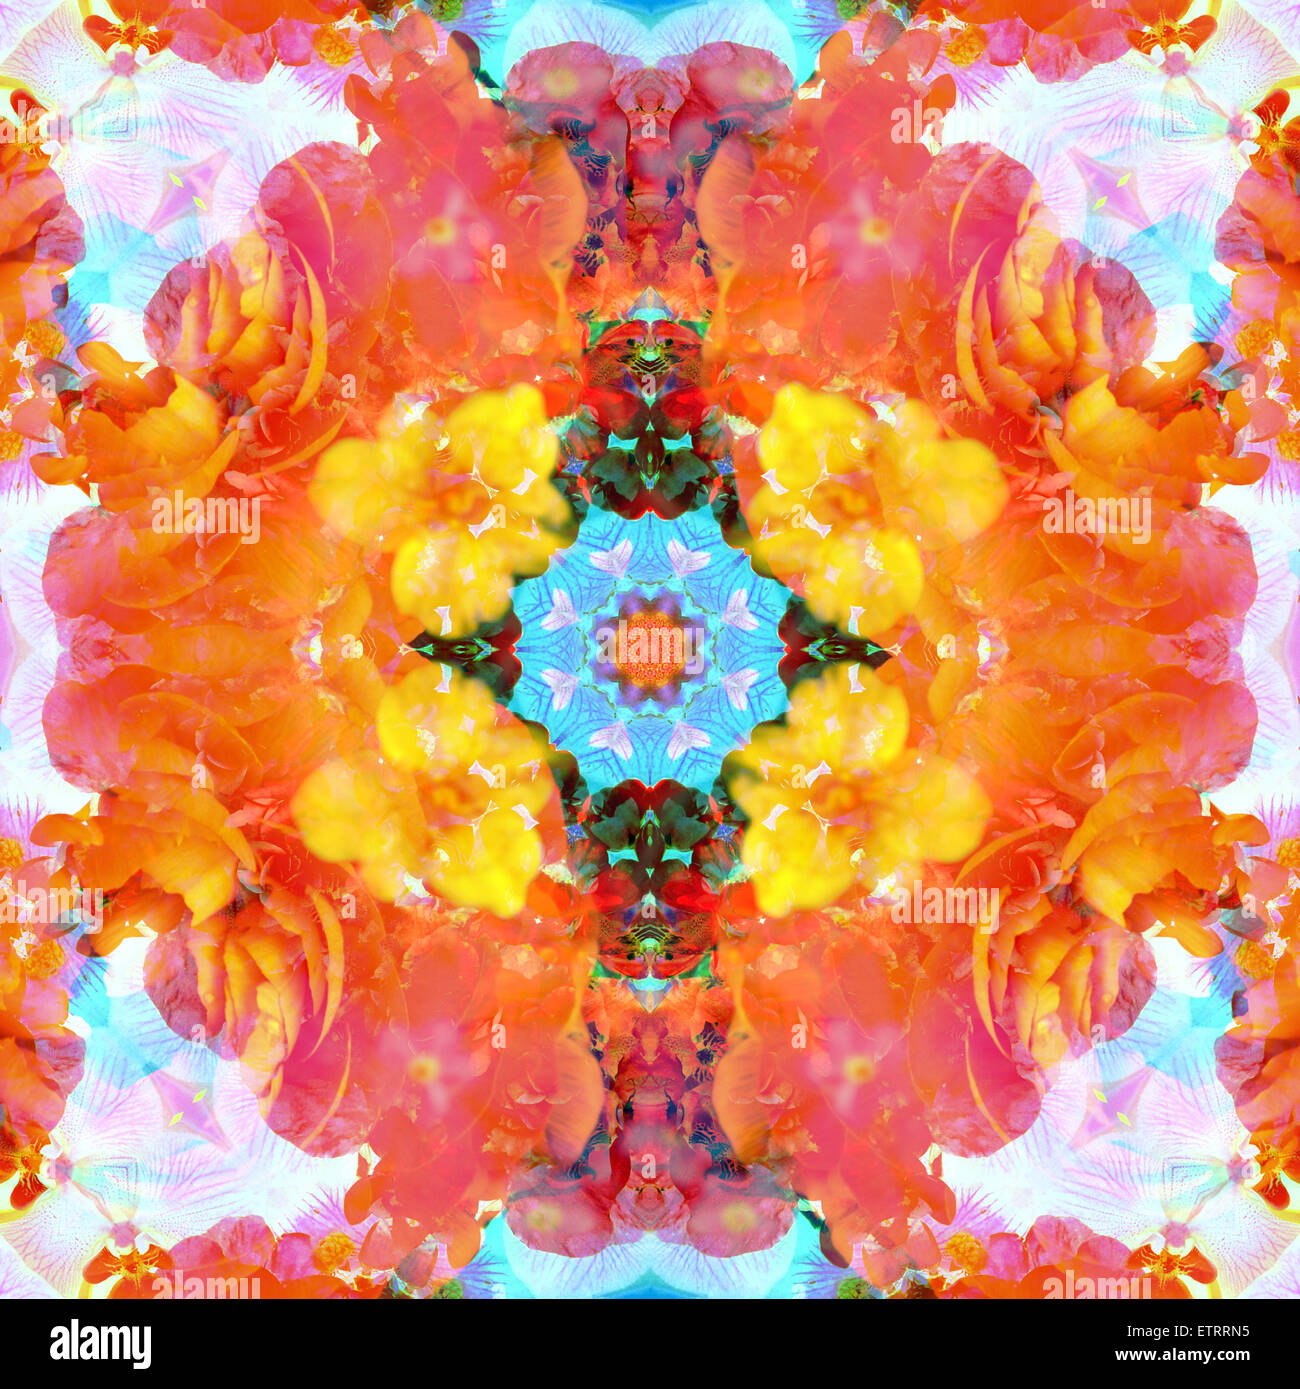 a mandala ornament from flower photographs, conceptual layer work Stock Photo